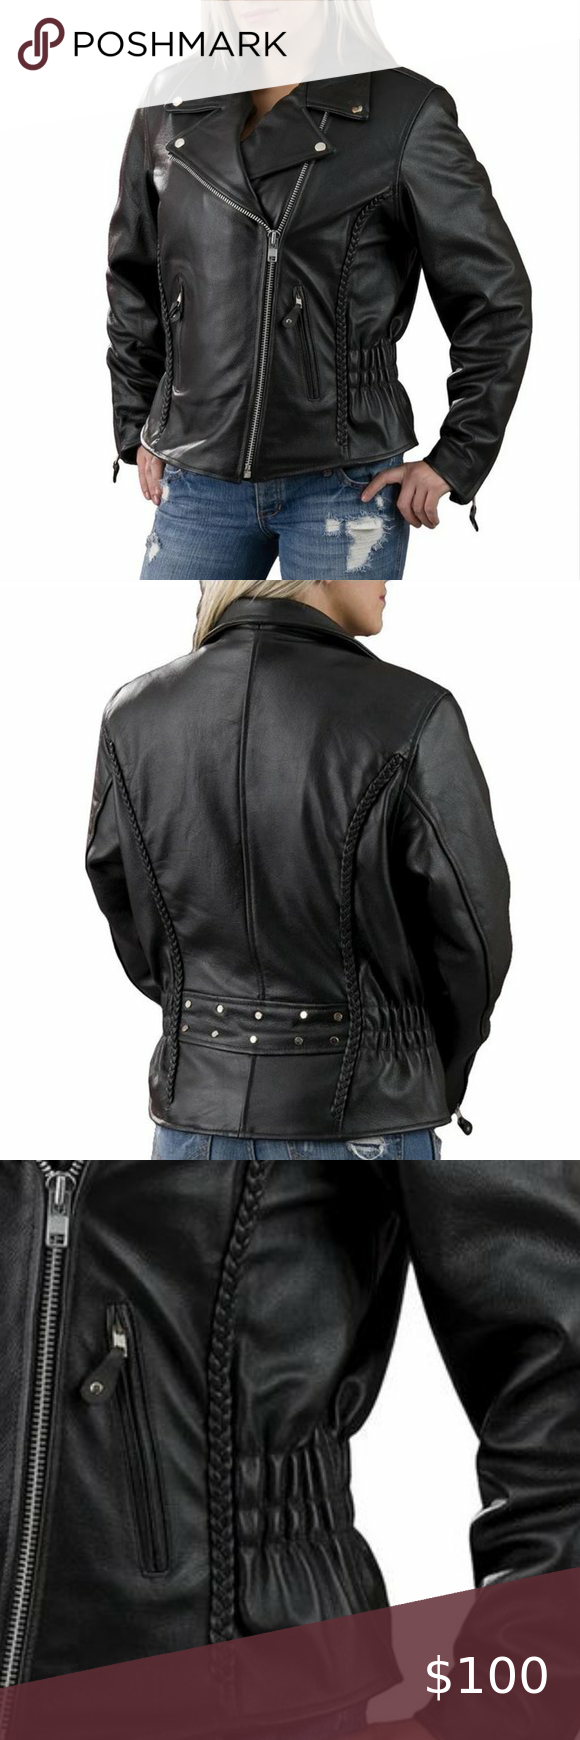 Interstate Leather Classic Leather Moto Jacket Xl Leather Moto Jacket Classic Leather Moto Jacket [ 1740 x 580 Pixel ]